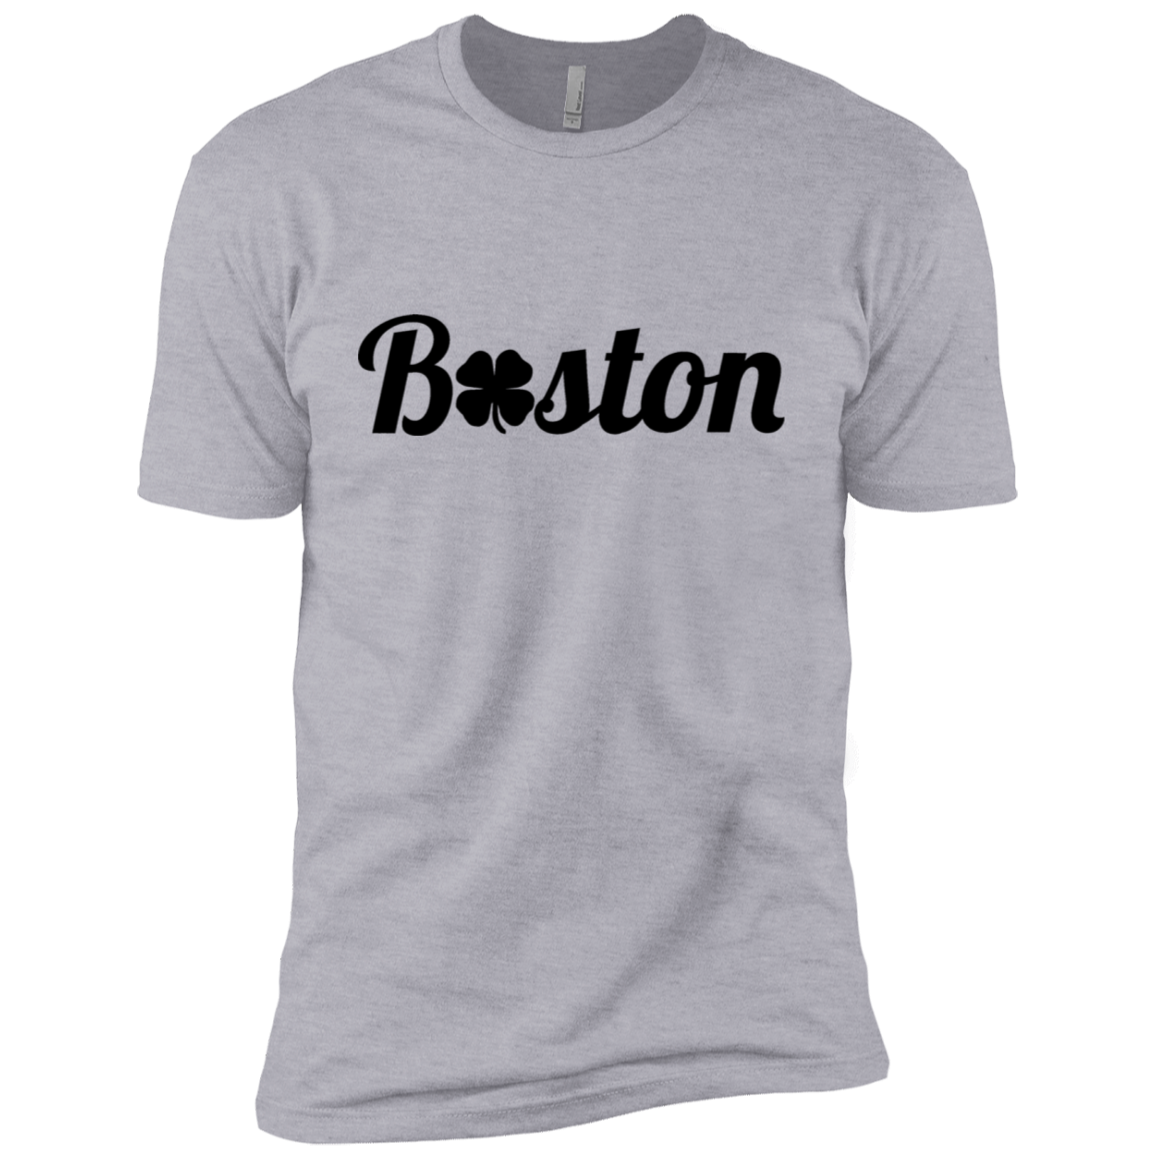 Boston Celtics Men's Classic Tee - Trendy Tees